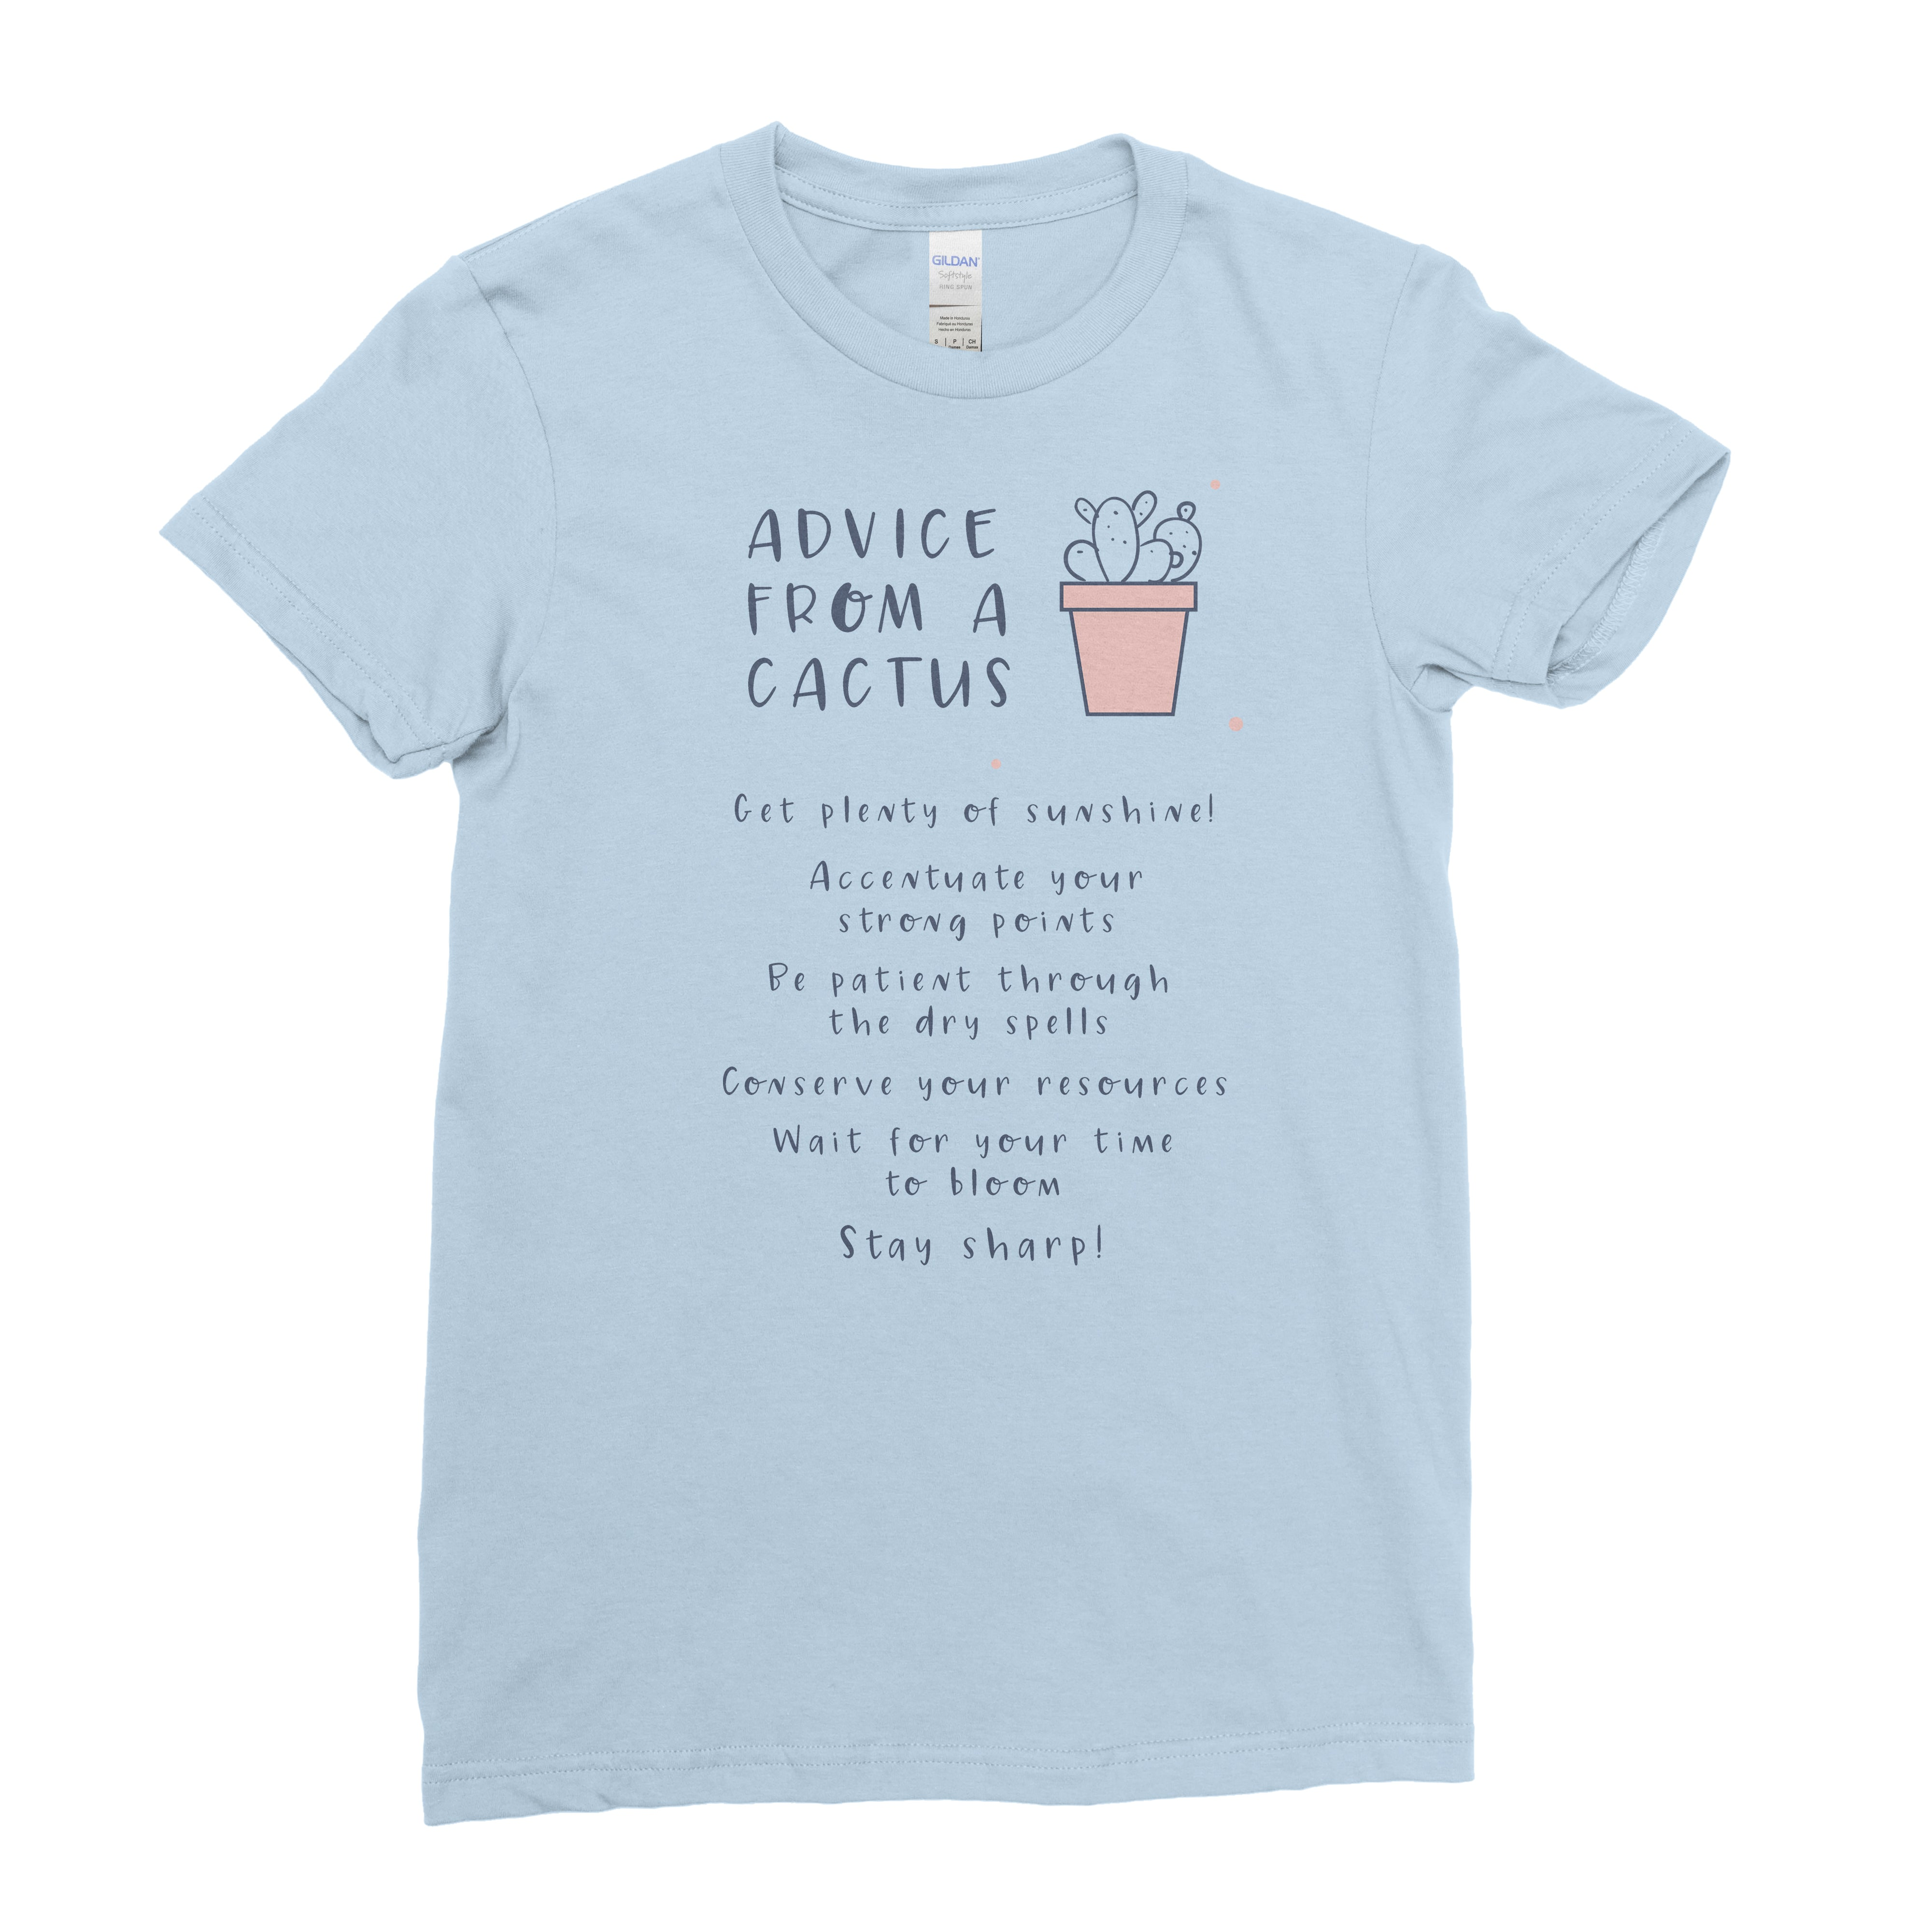 658d6860 Advice From A Cactus - T-shirt - Womens - Ai Printing